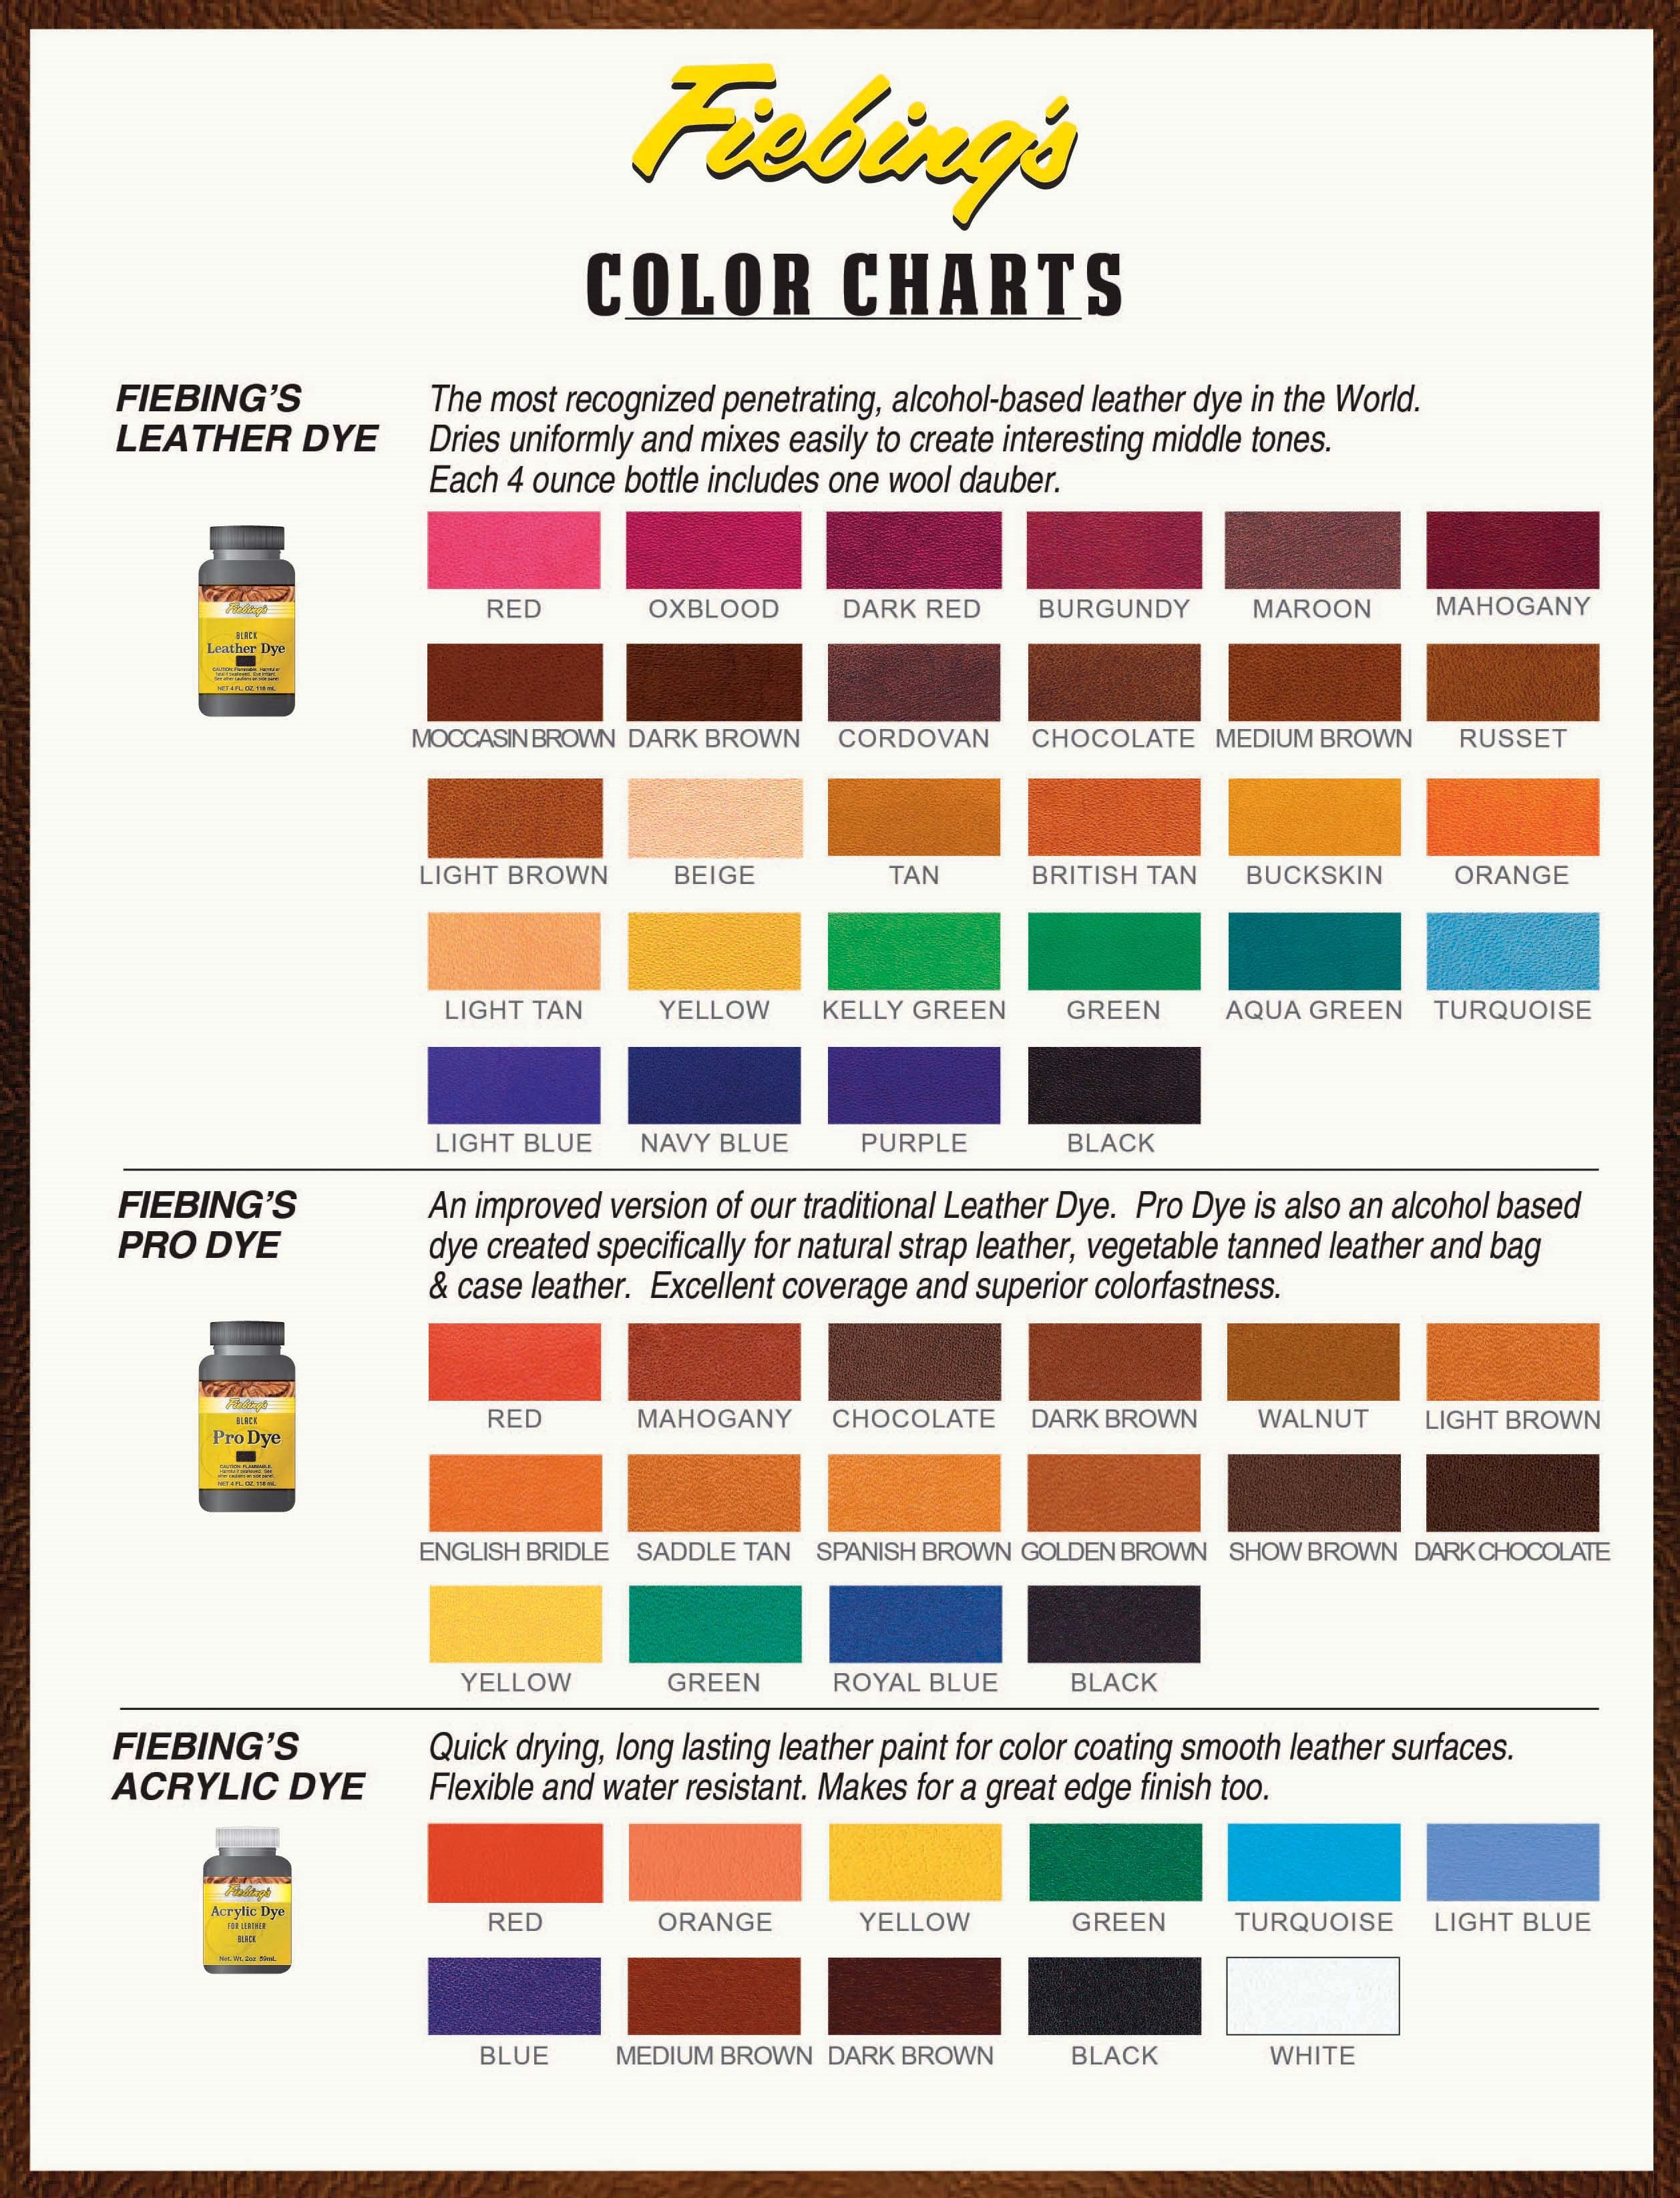 Rit dye colors chart images free any chart examples